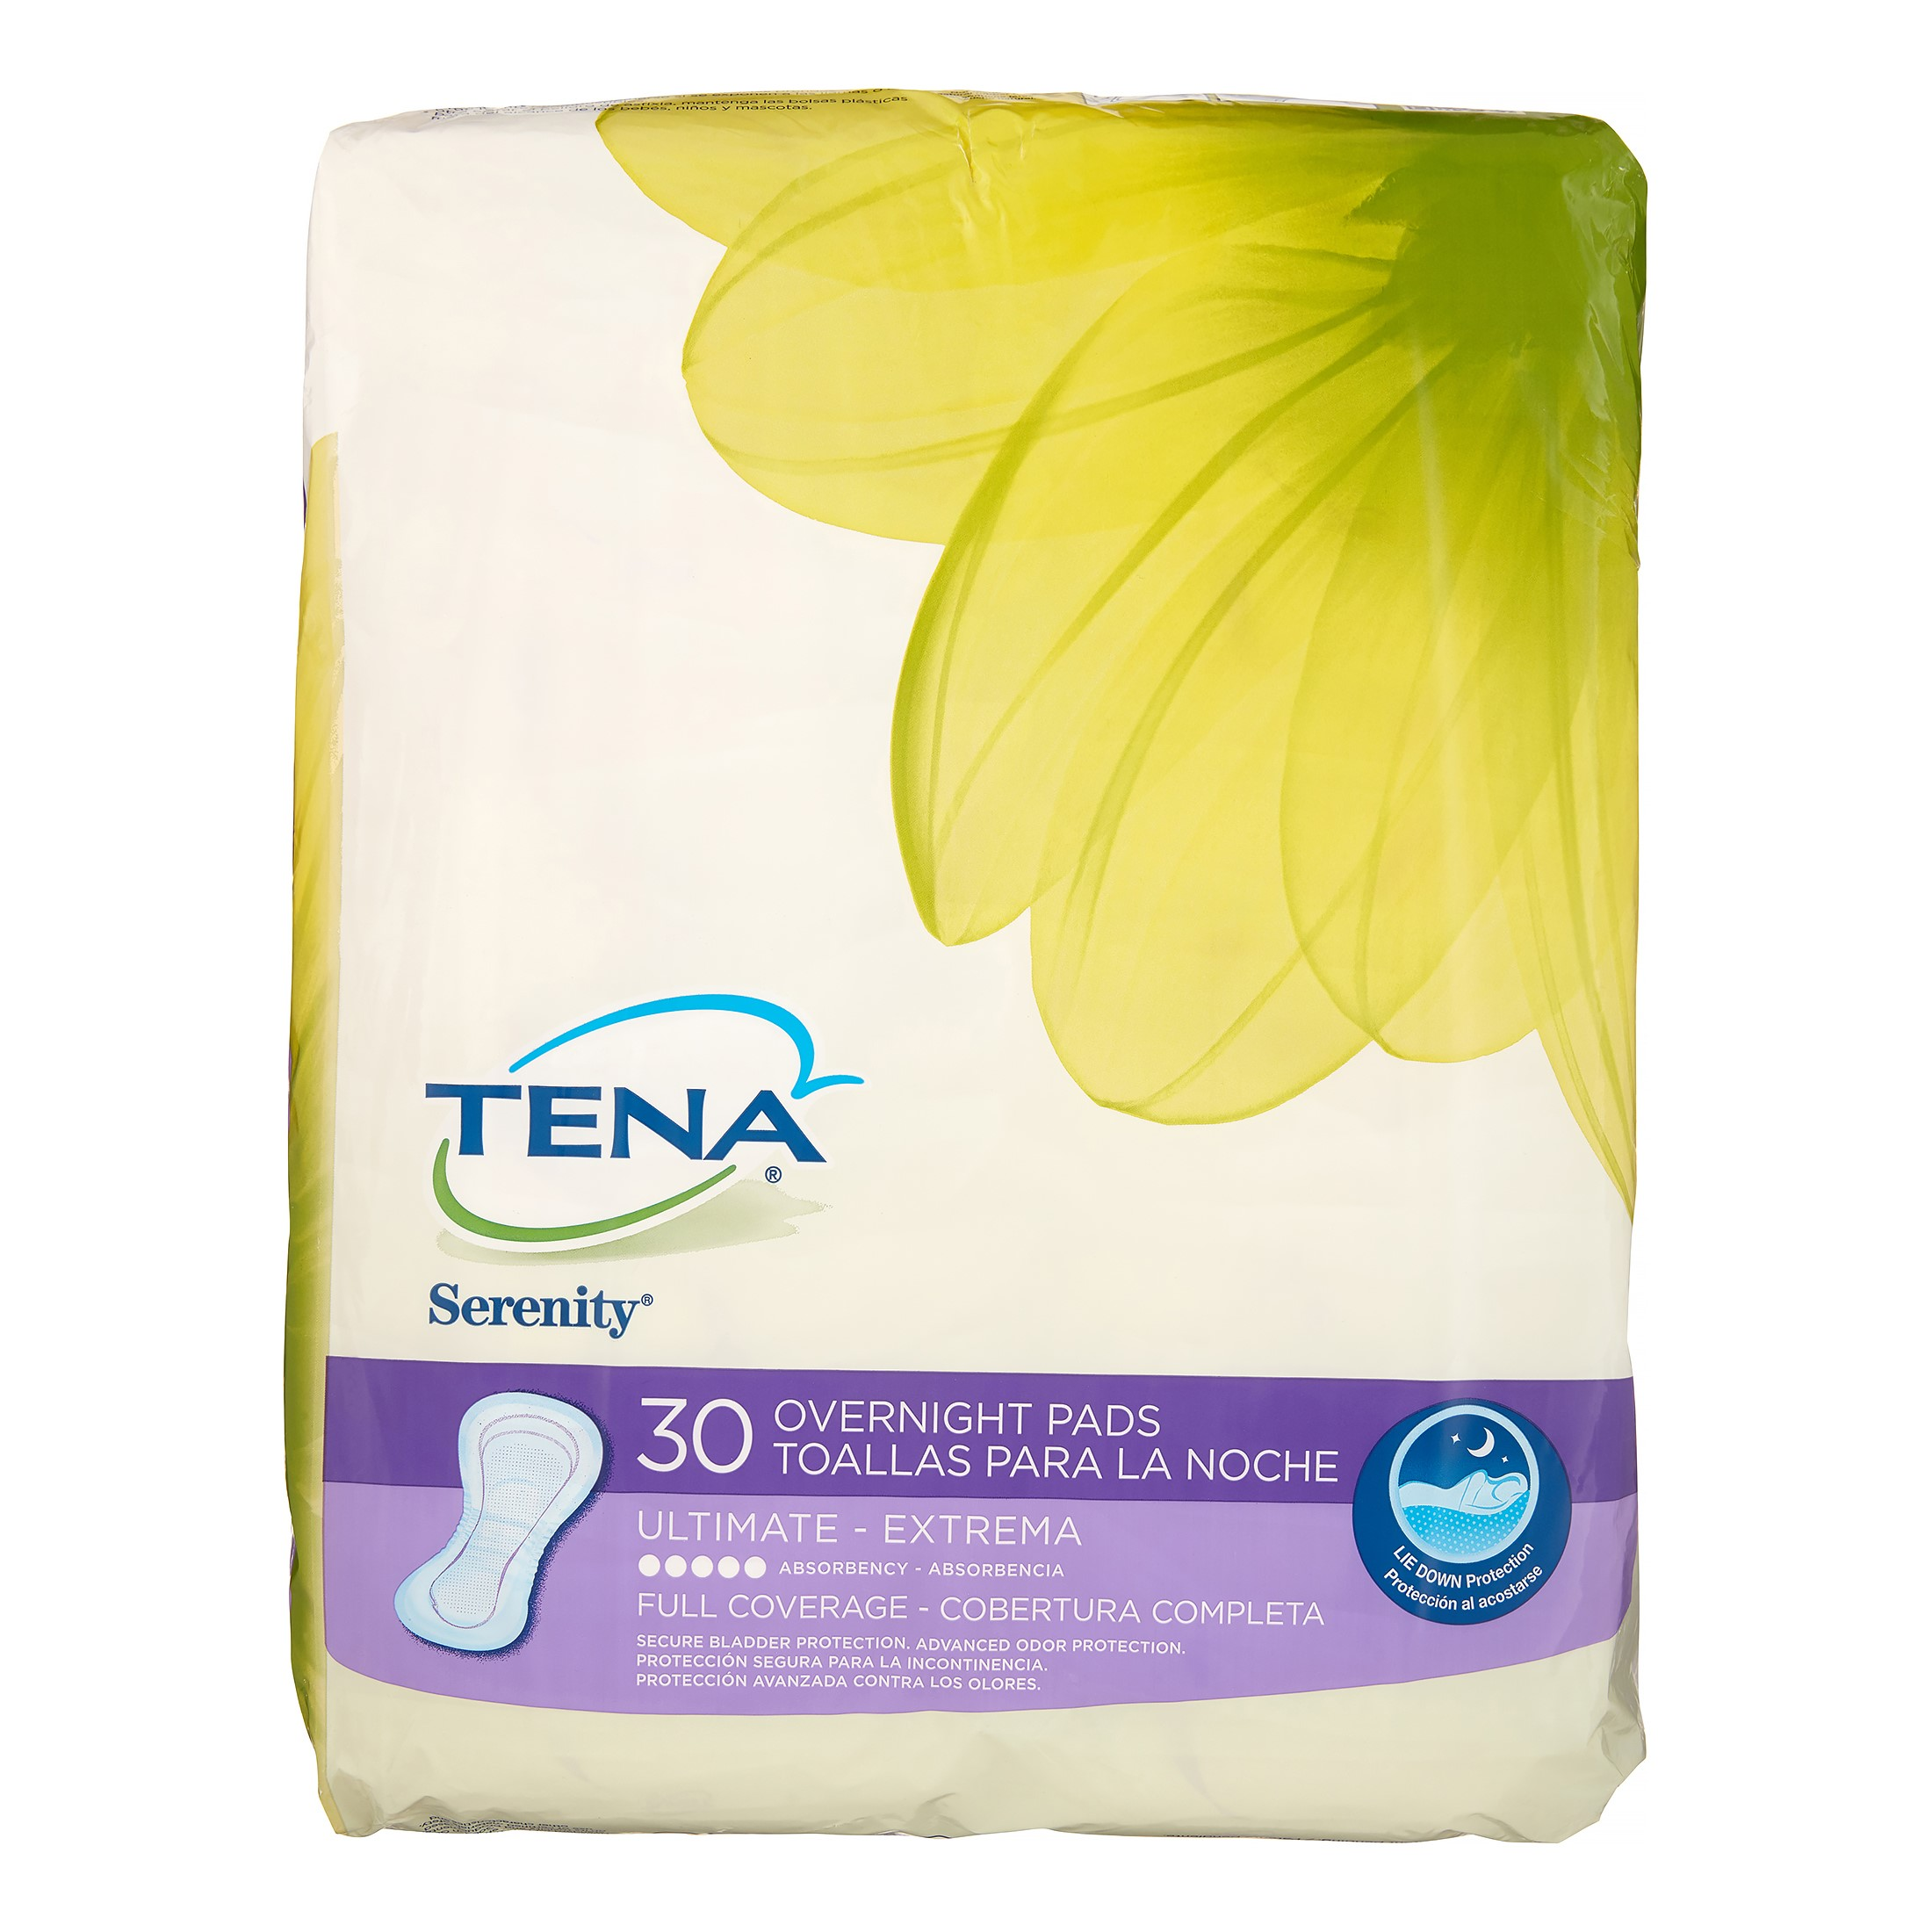 Tena Serenity Ultimate Overnight Pads 30 Ct